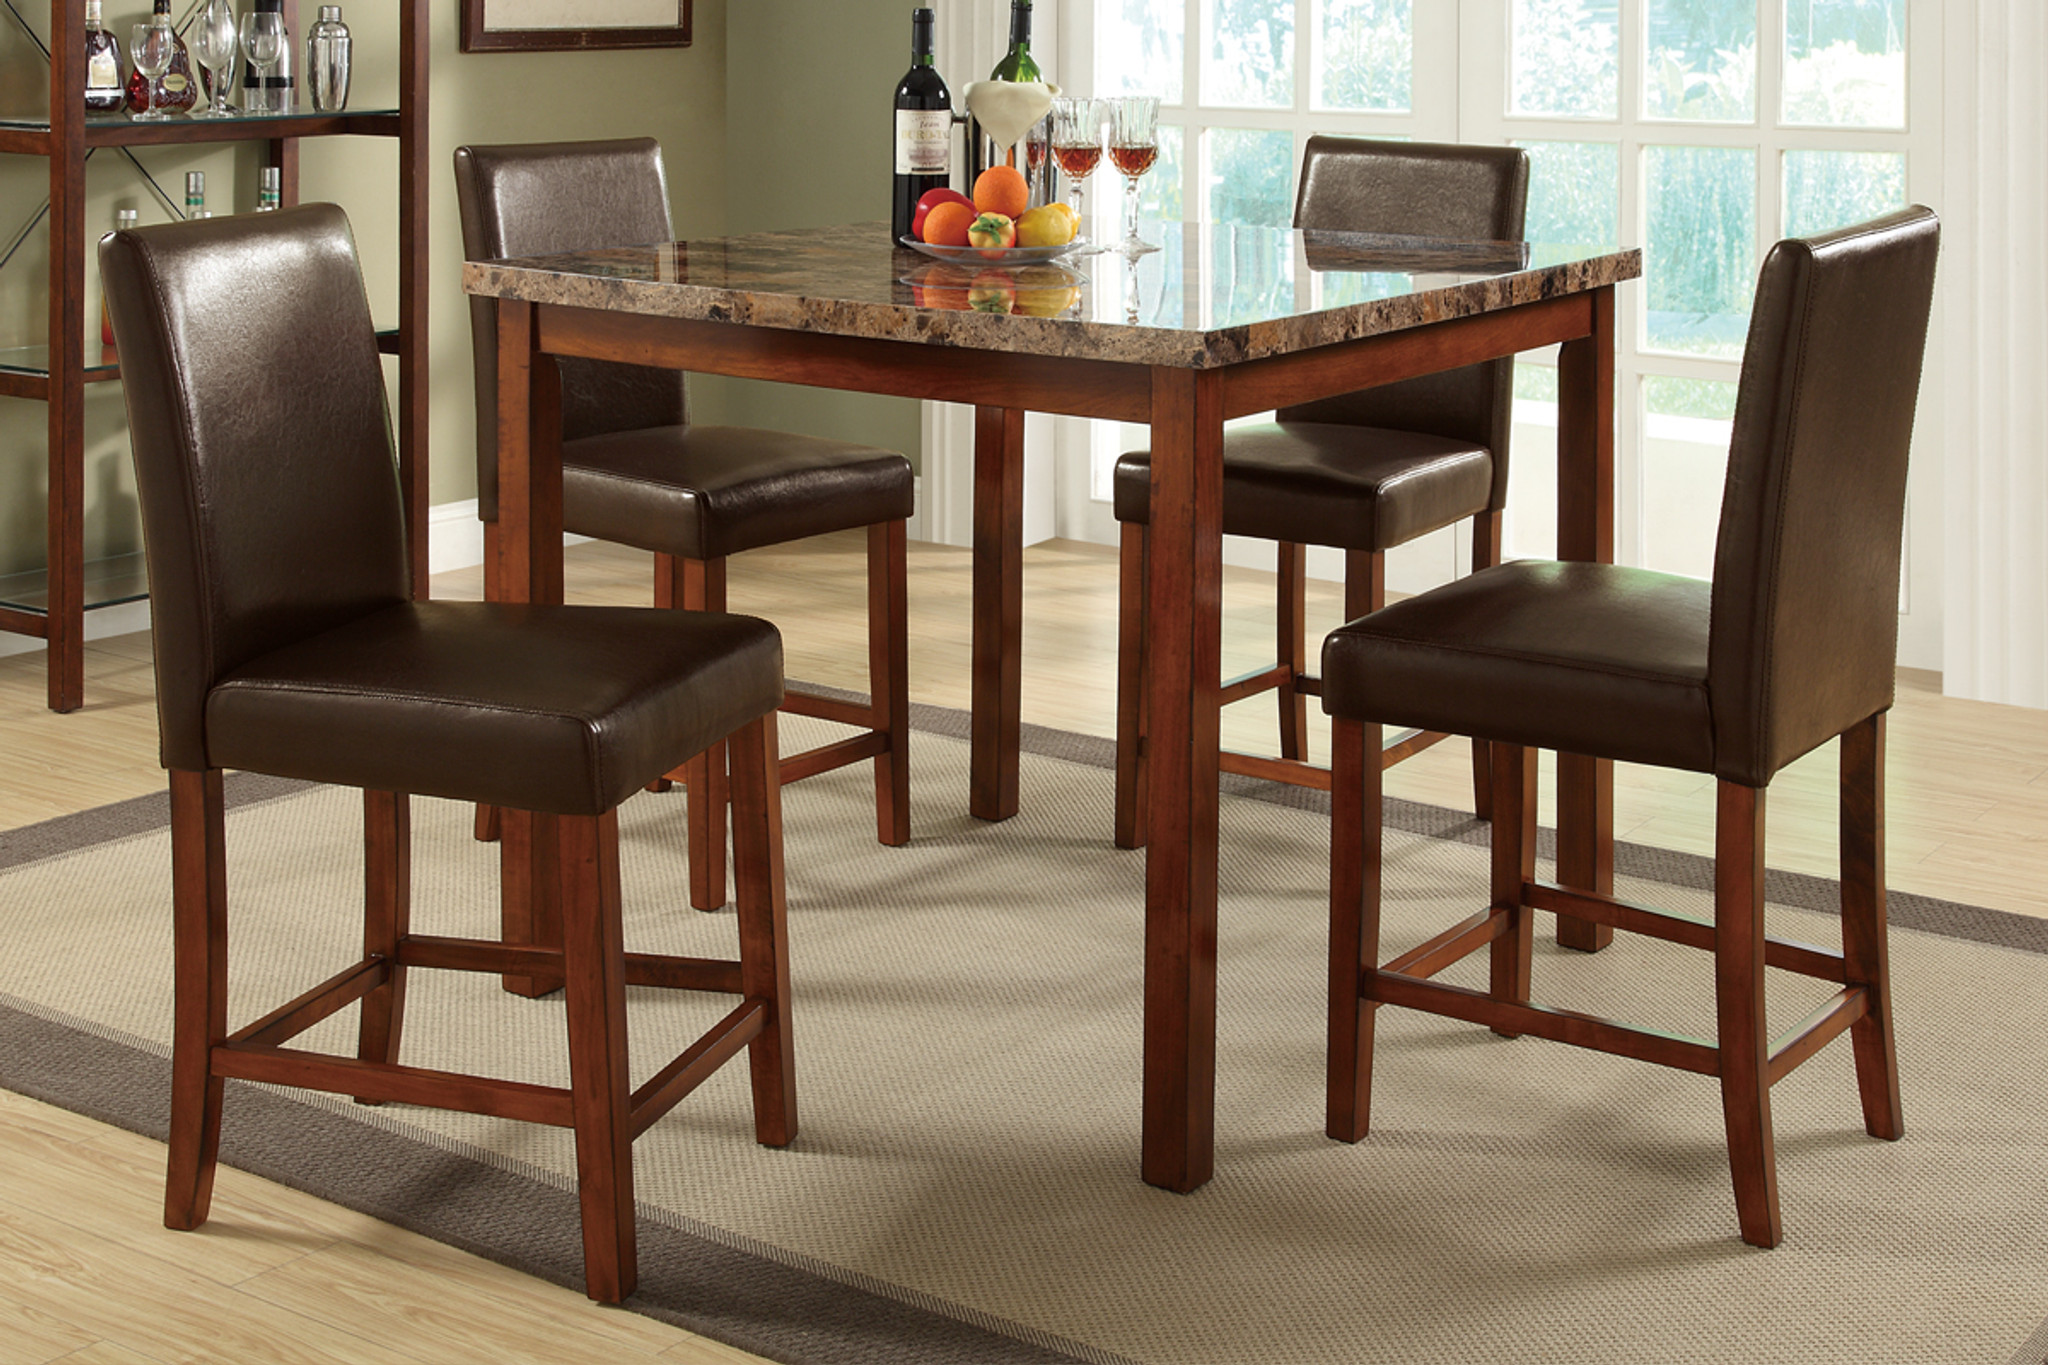 5 Pieces Marble Finished Top Brown Faux Leather Counter Height Set Km Home Furniture